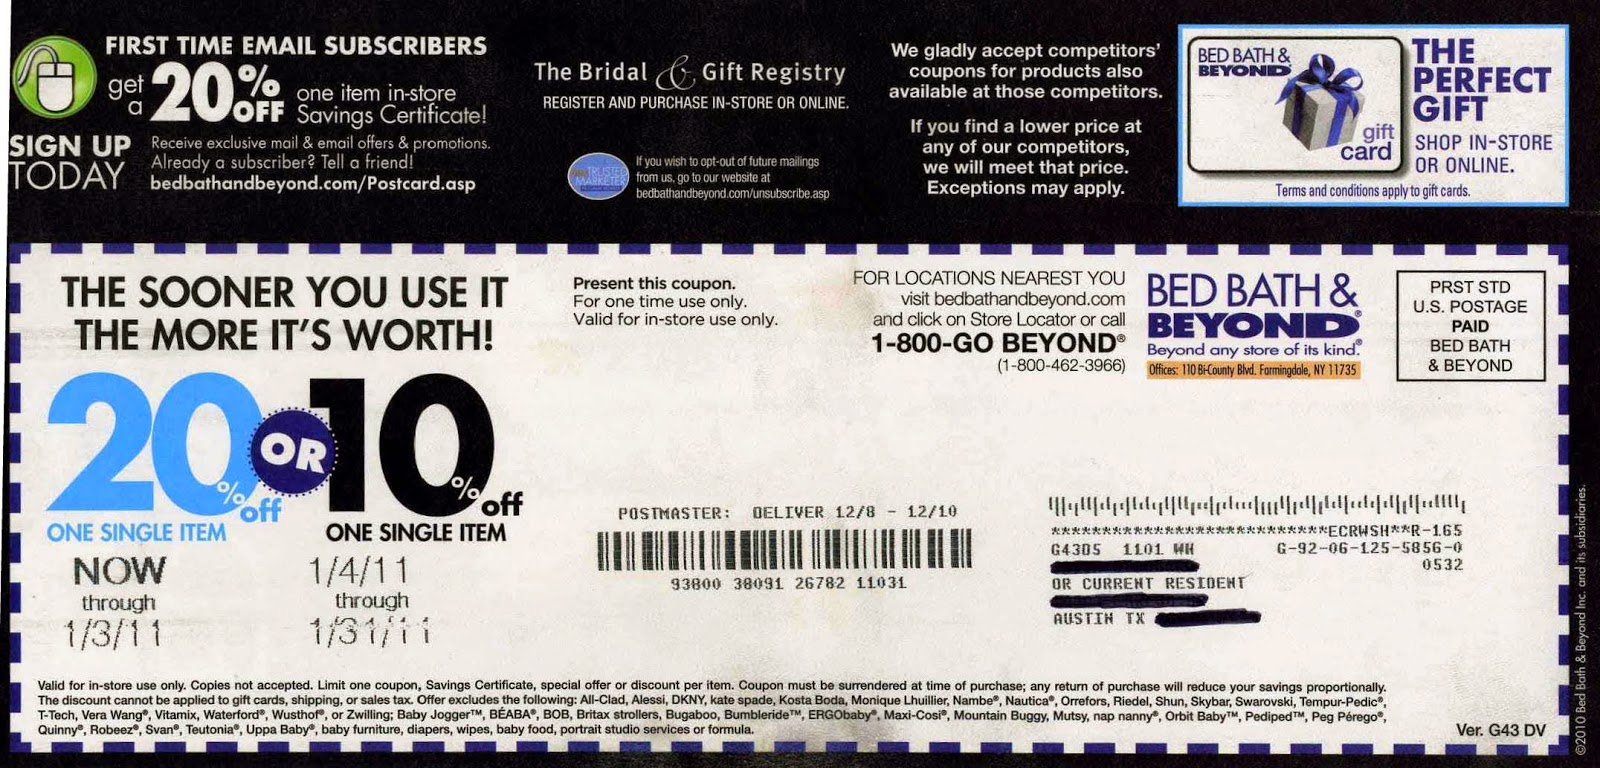 Bed bath and beyond.ca coupon code